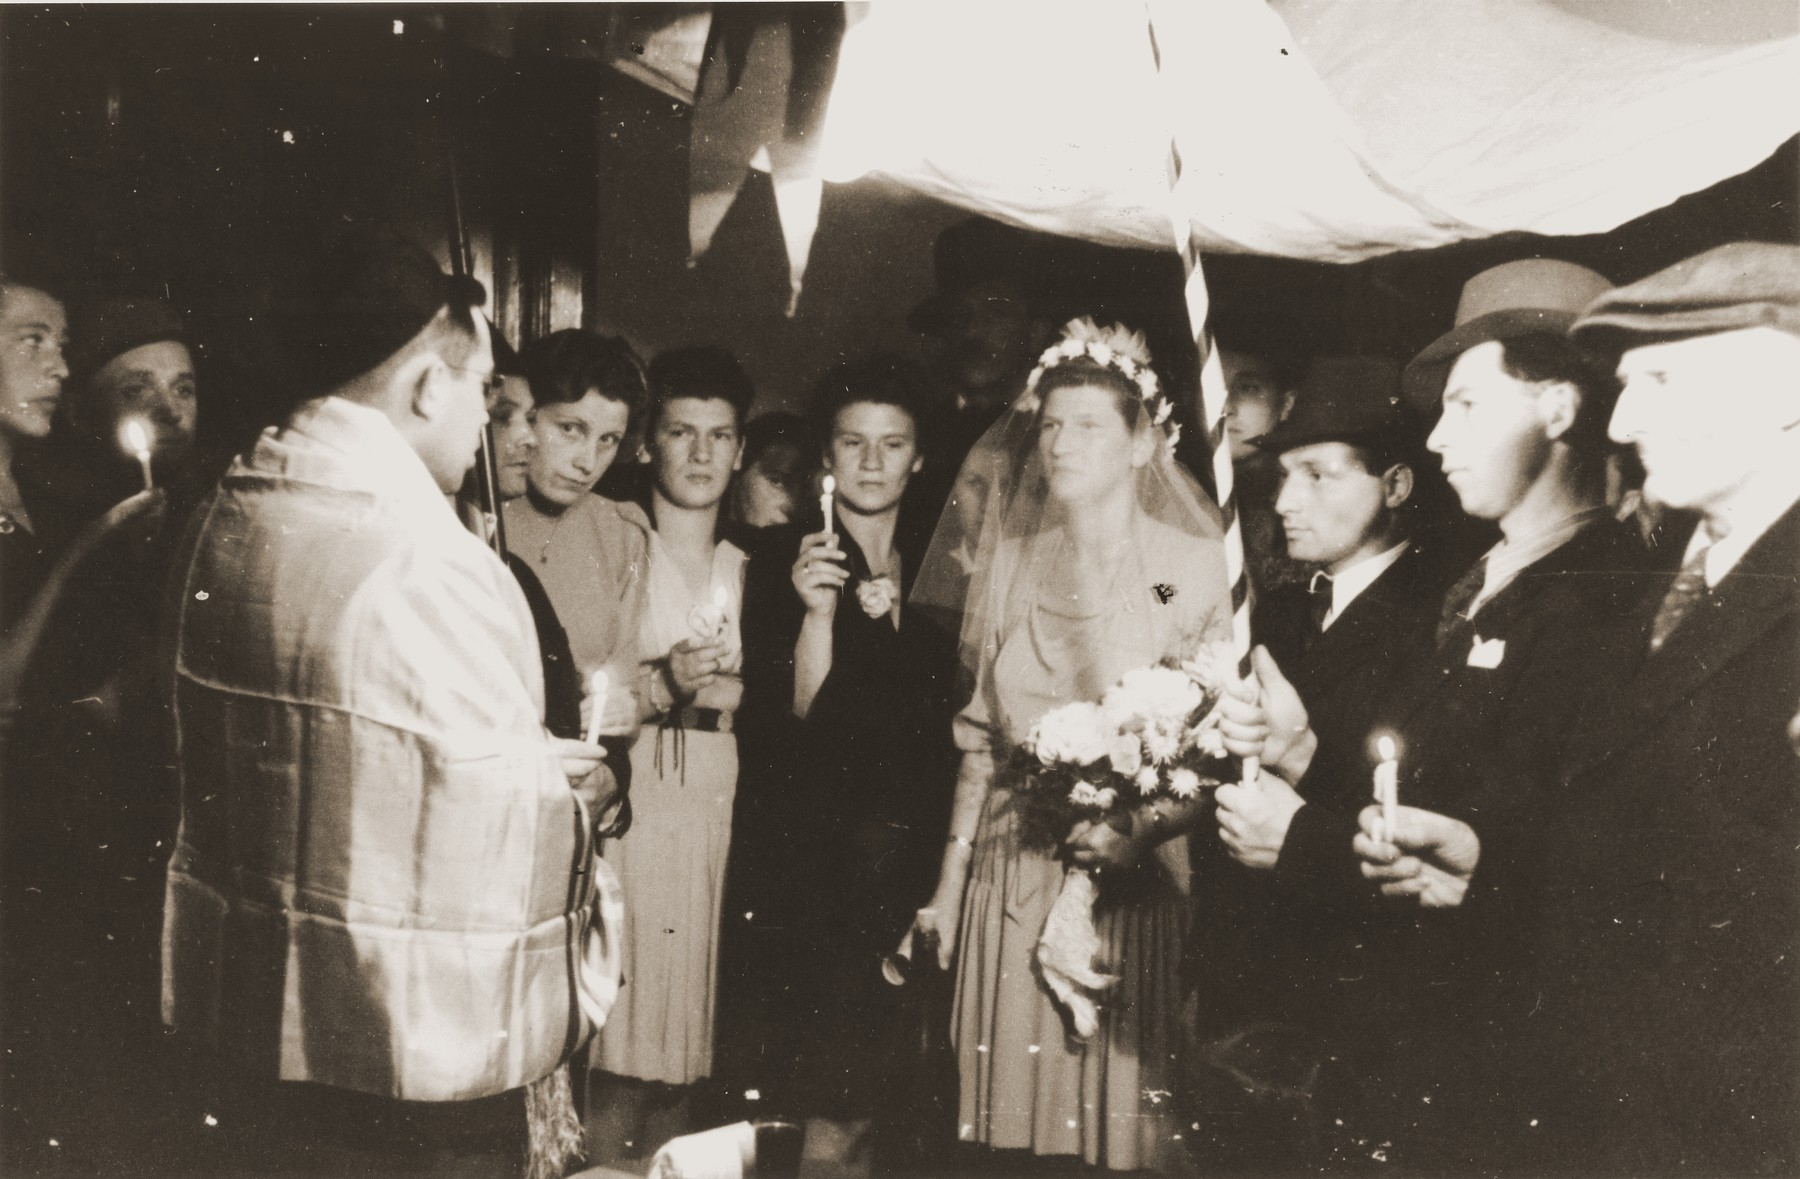 American military chaplain Rabbi Lifschitz officiates at the wedding of two members of the Bricha organization held at Frankgasse 2..    The bride is Greta Zandberg.